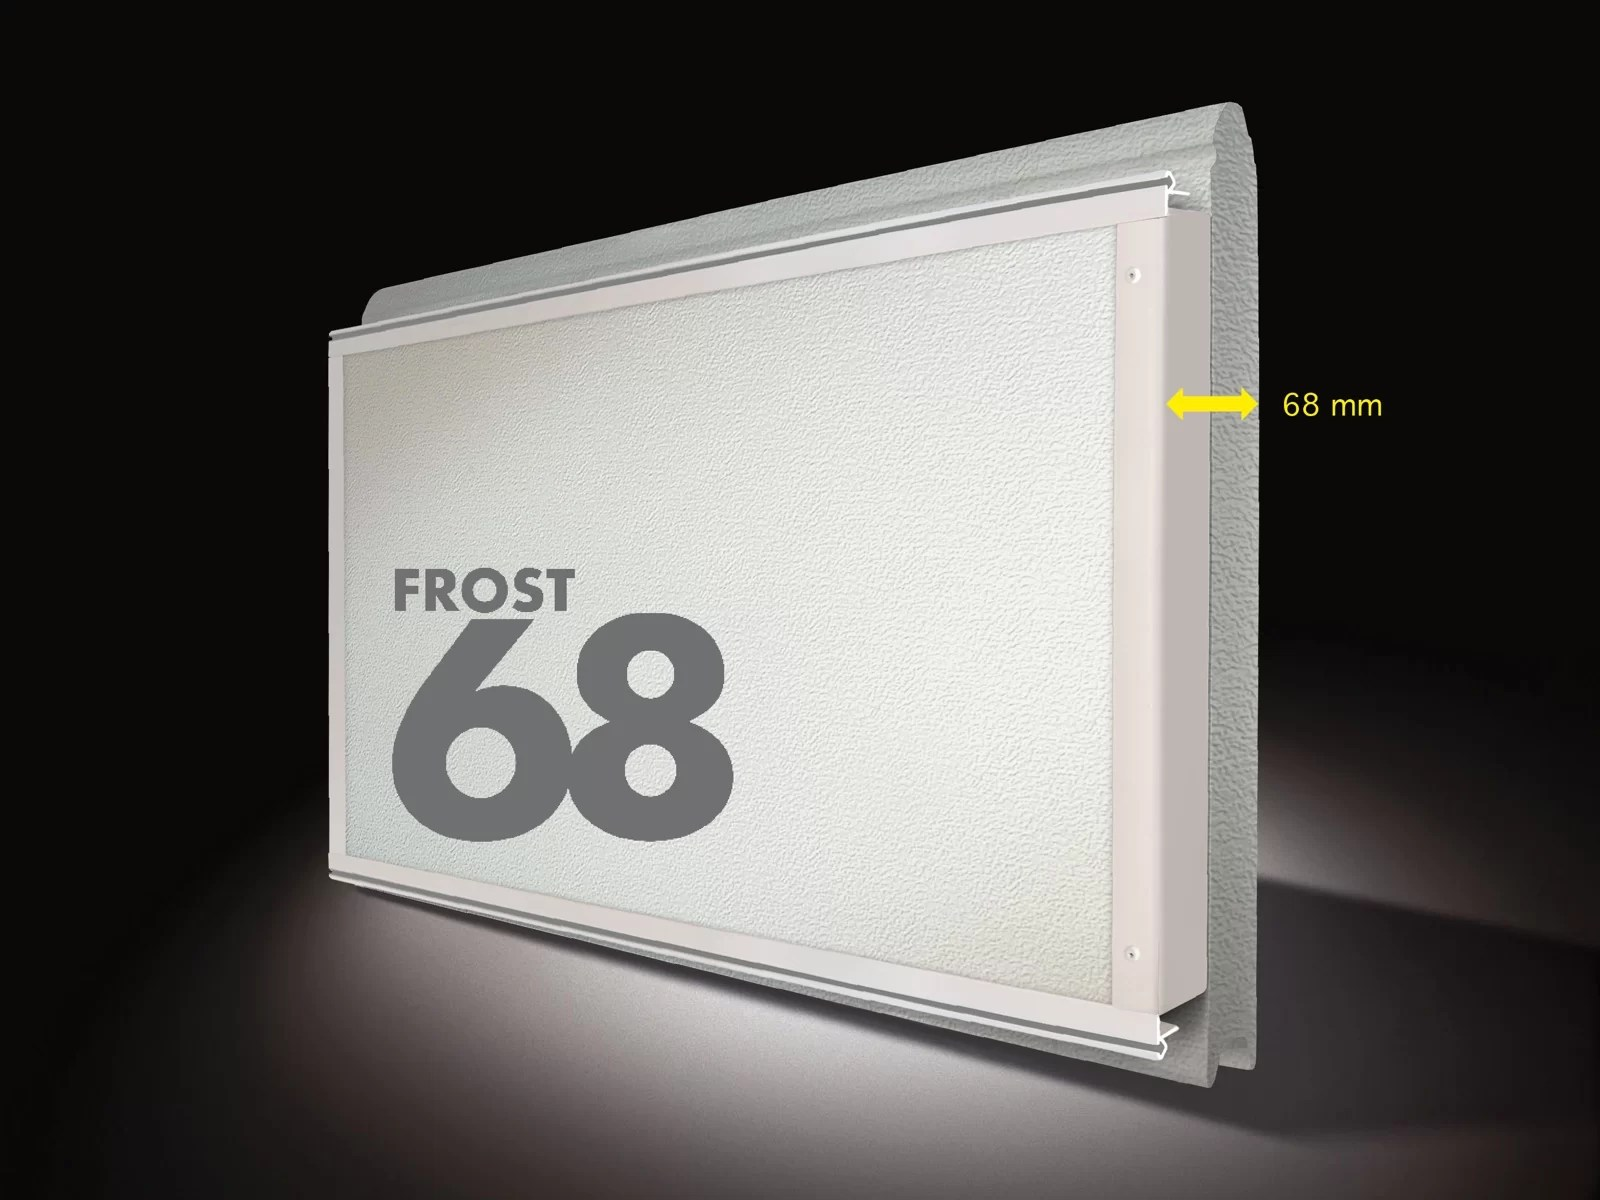 Frost 68